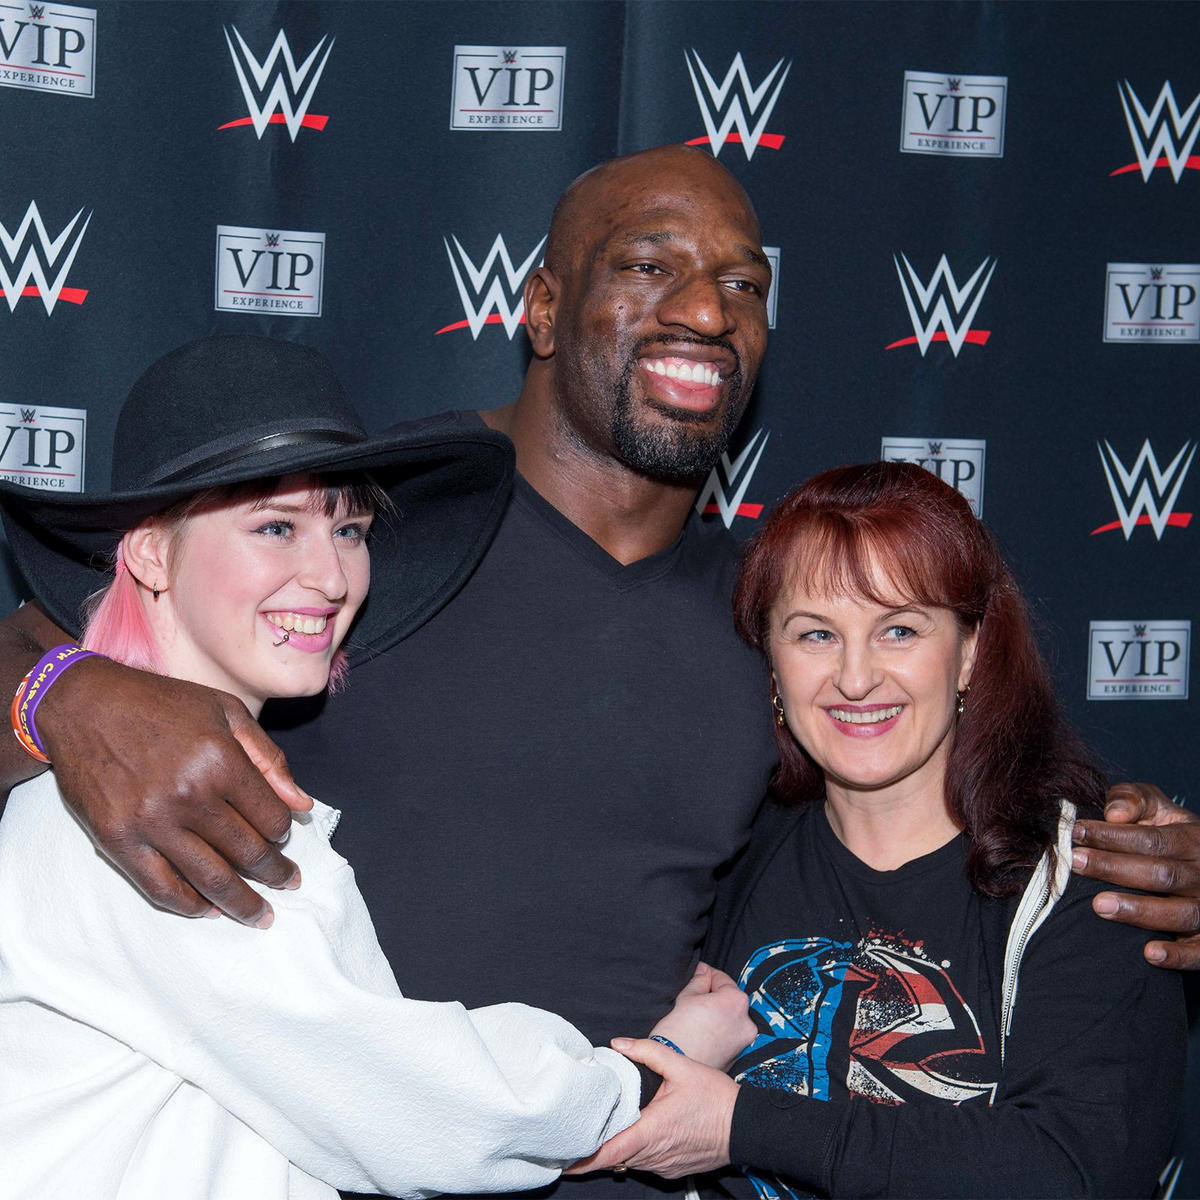 Wwe superstars visit hannover germany photos wwe titus oneil snaps a pic with some of the wwe universe members in hannover m4hsunfo